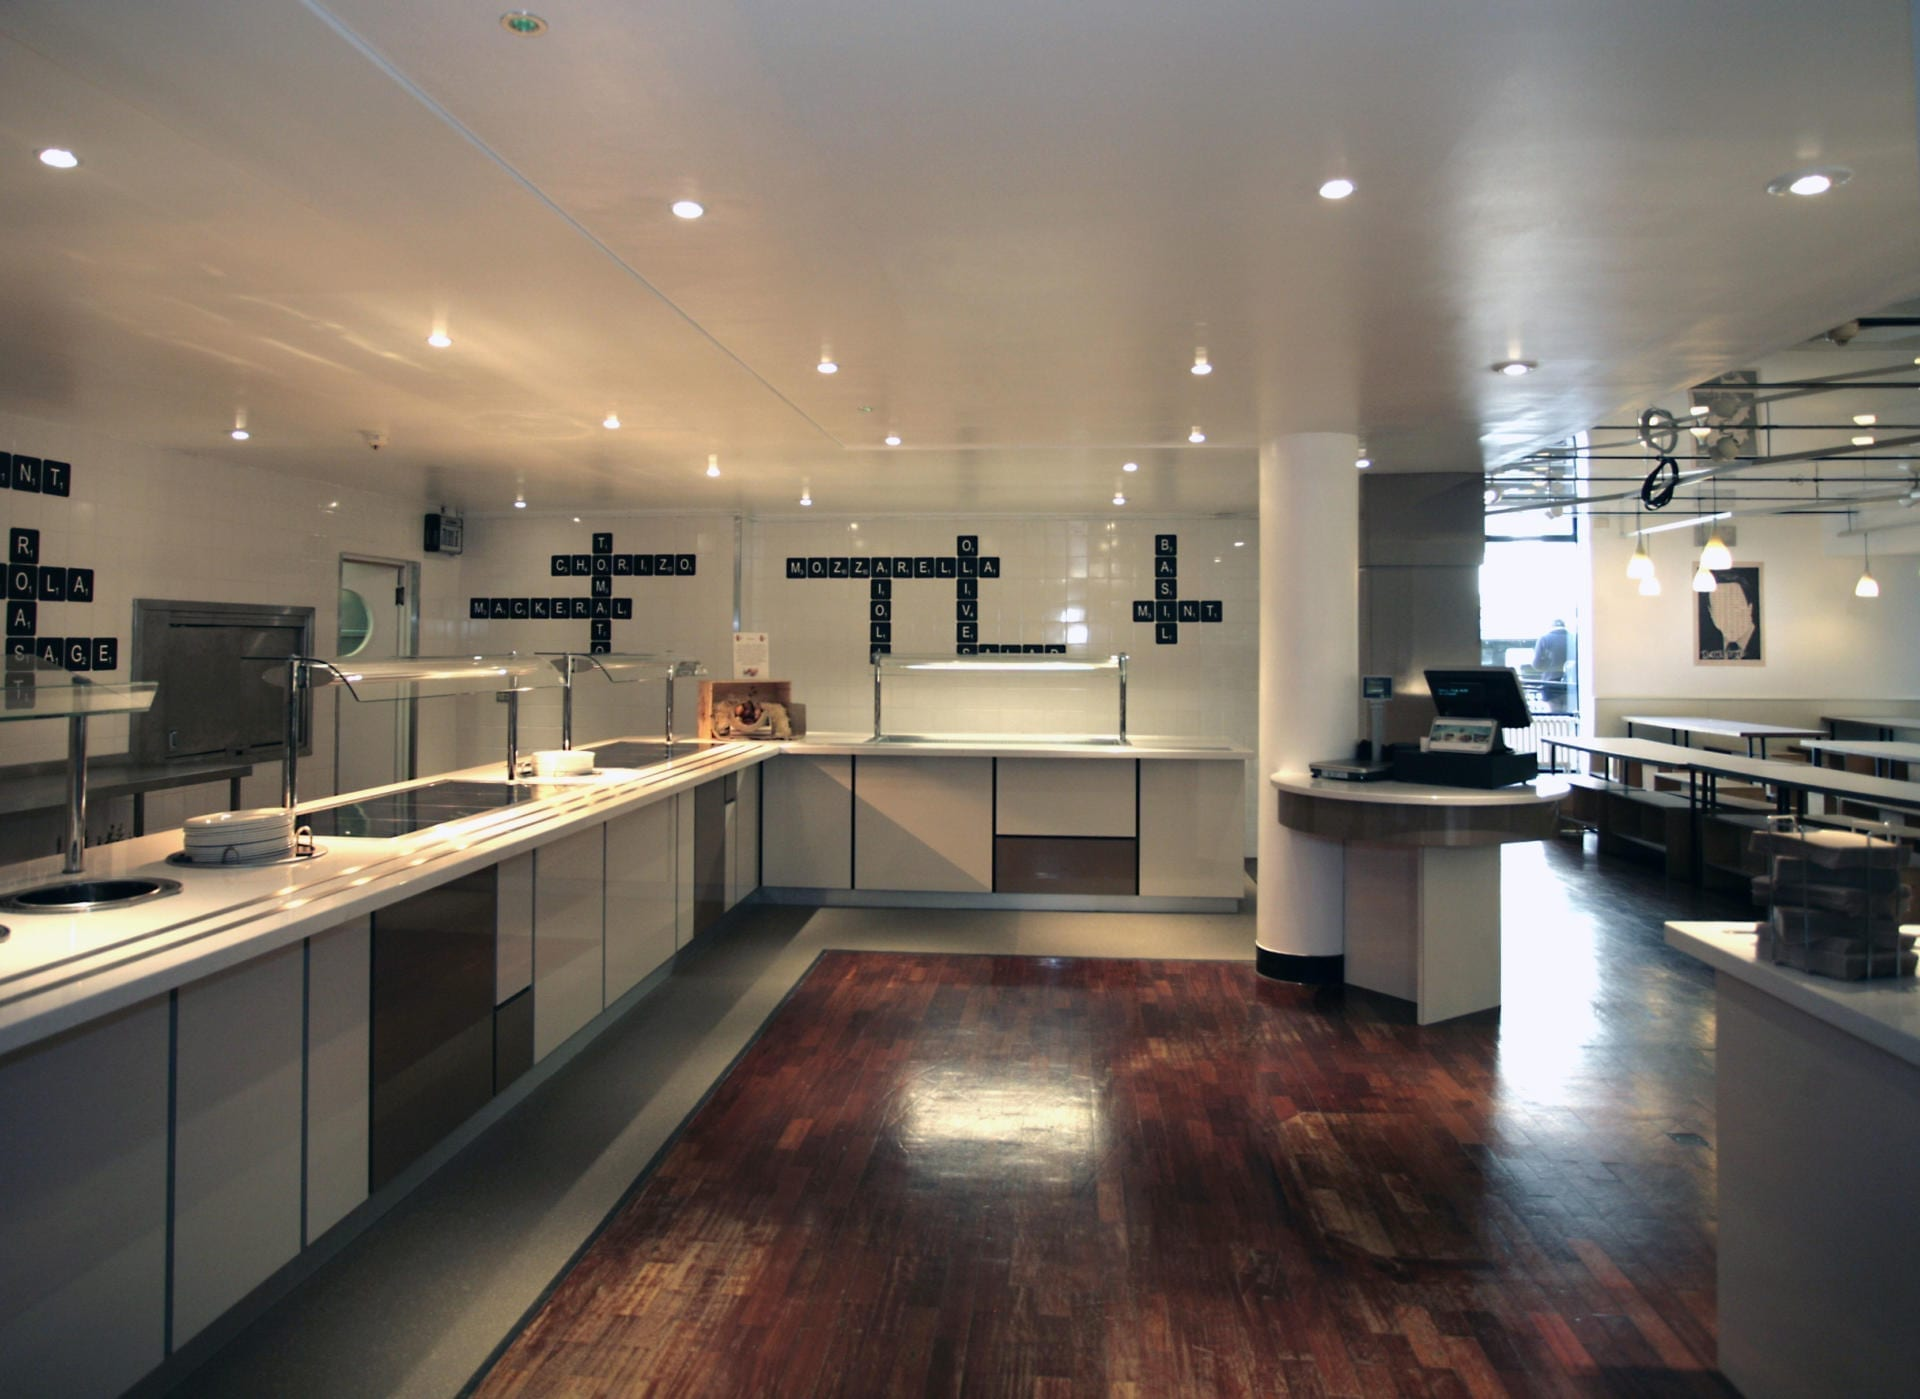 royalcollegeofart-restuarantkitchendesign-spacecatering8